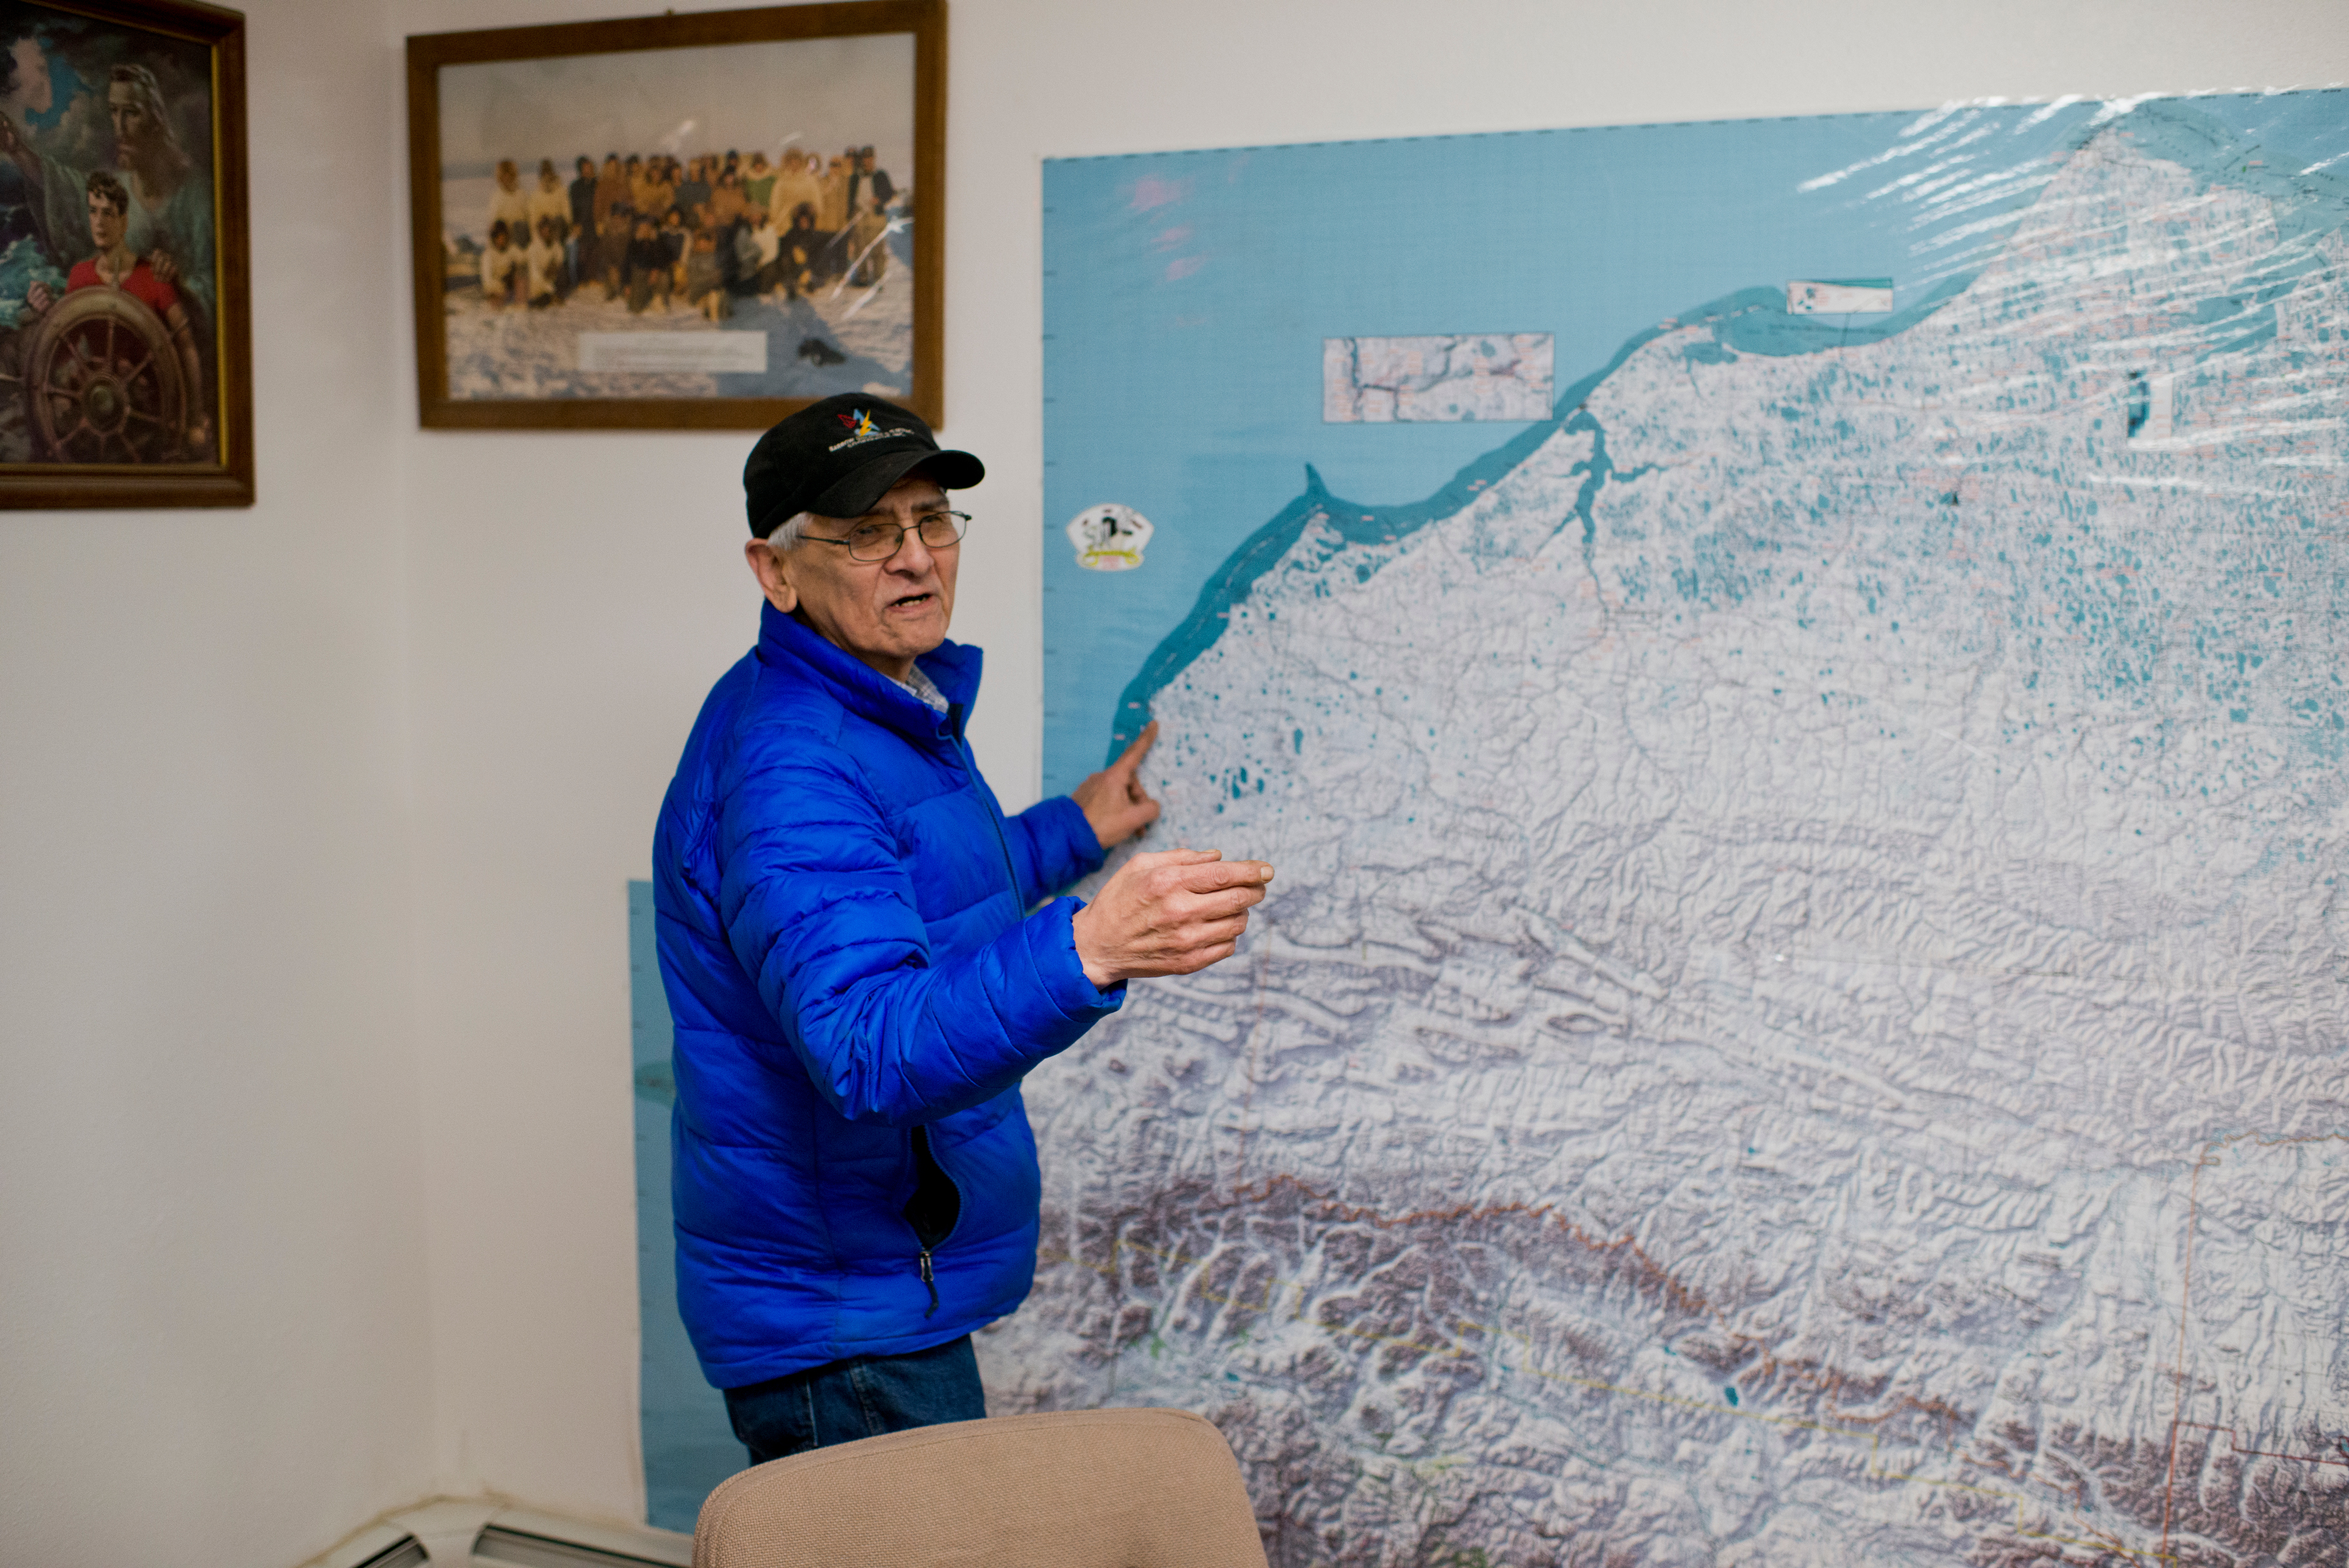 Barrow Search and Rescue vice president Johnny Adams discusses the region that the group responds. A large map in the group's headquarters marks camps and cabins on the North Slope. When someone is lost or stranded in the wild lands within 25 miles of Utqiagvik, volunteers from Barrow Search and Rescue often take they lead in retrieving them. The group also has helped map camps and cabins in the region, stake trails between village and provide emergency beacons for travelers. Photographed on Tuesday, December 13, 2016. (Marc Lester / Alaska Dispatch News)